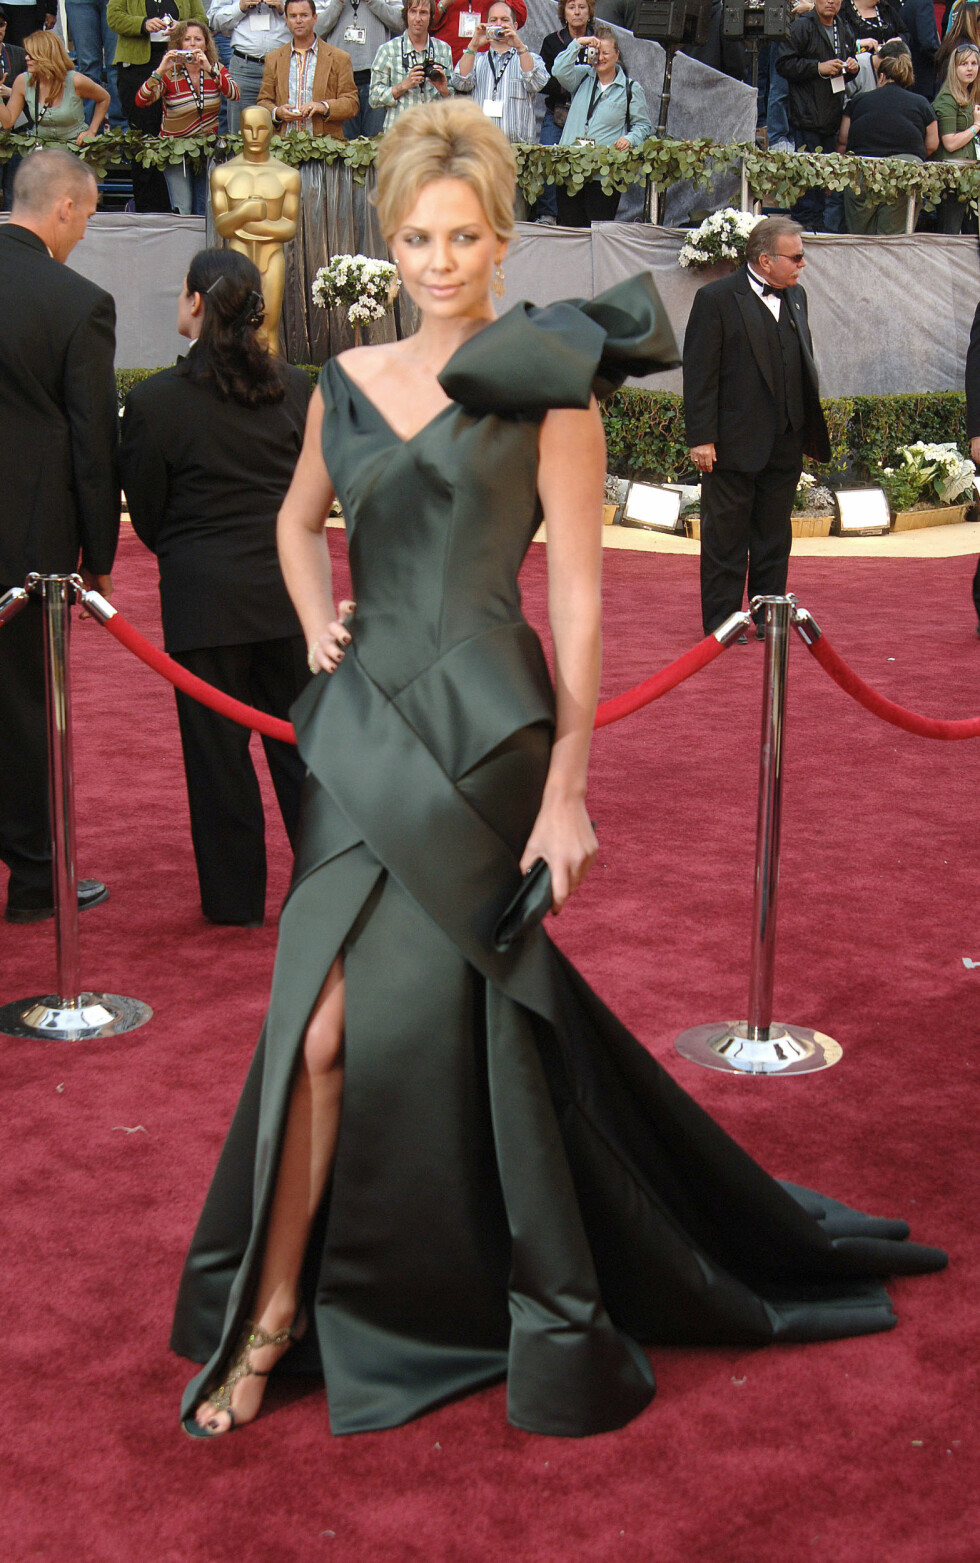 78th Annual Academy Awards held at the Kodak Theater, Hollywood, CA.  on March 5, 2006  Pictured: Charlize Theron Ref: SPL930243  170115   Picture by: Photo Image Press / Splash News  Splash News and Pictures Los Angeles:310-821-2666 New York:212-619-2666 London:870-934-2666 photodesk@splashnews.com  Foto: Photo Image Press / Splash News/ All Over Press